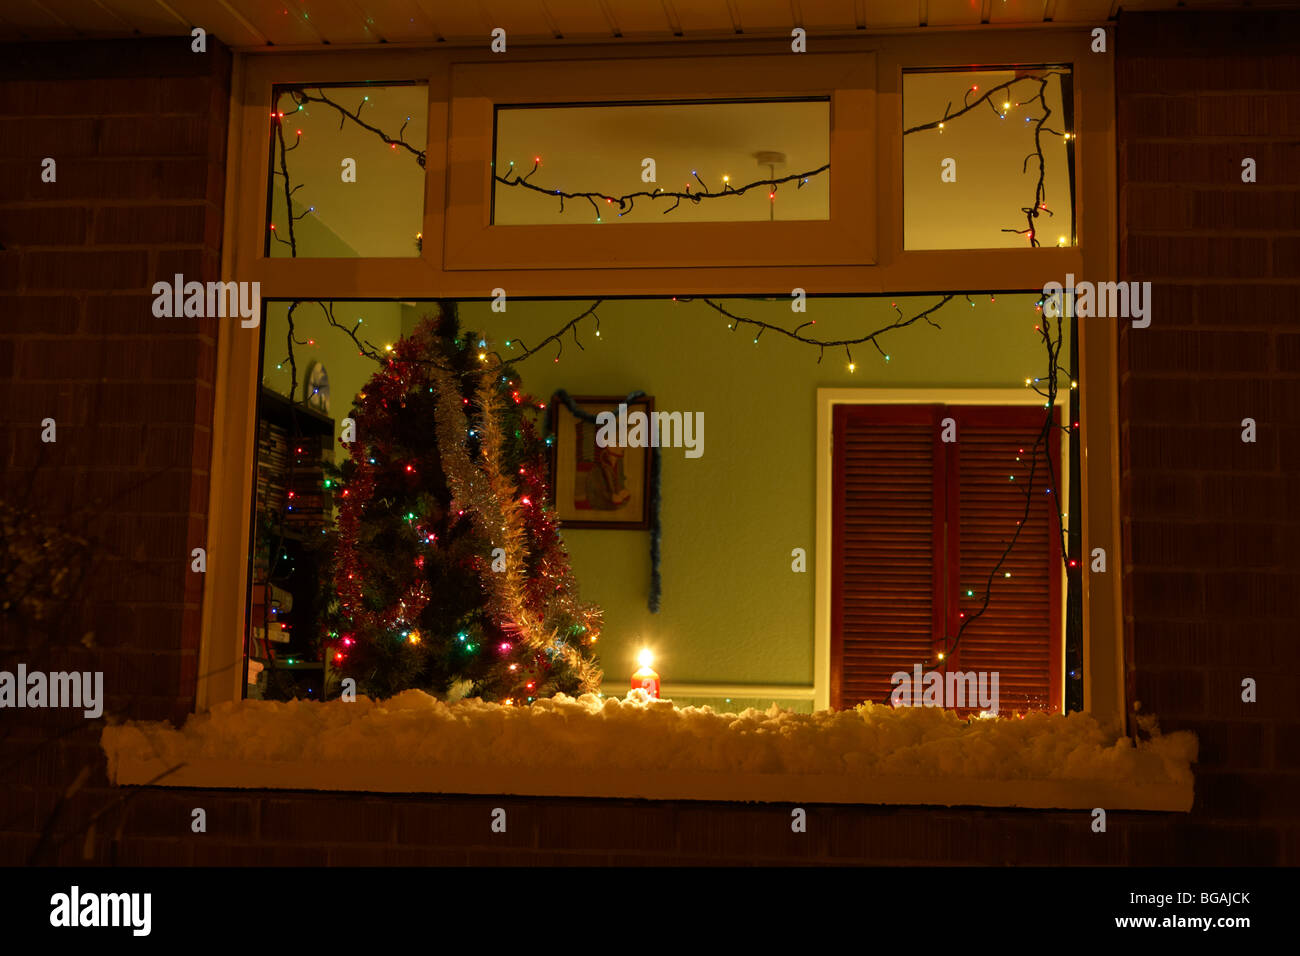 Candle burning in the window of a house with christmas